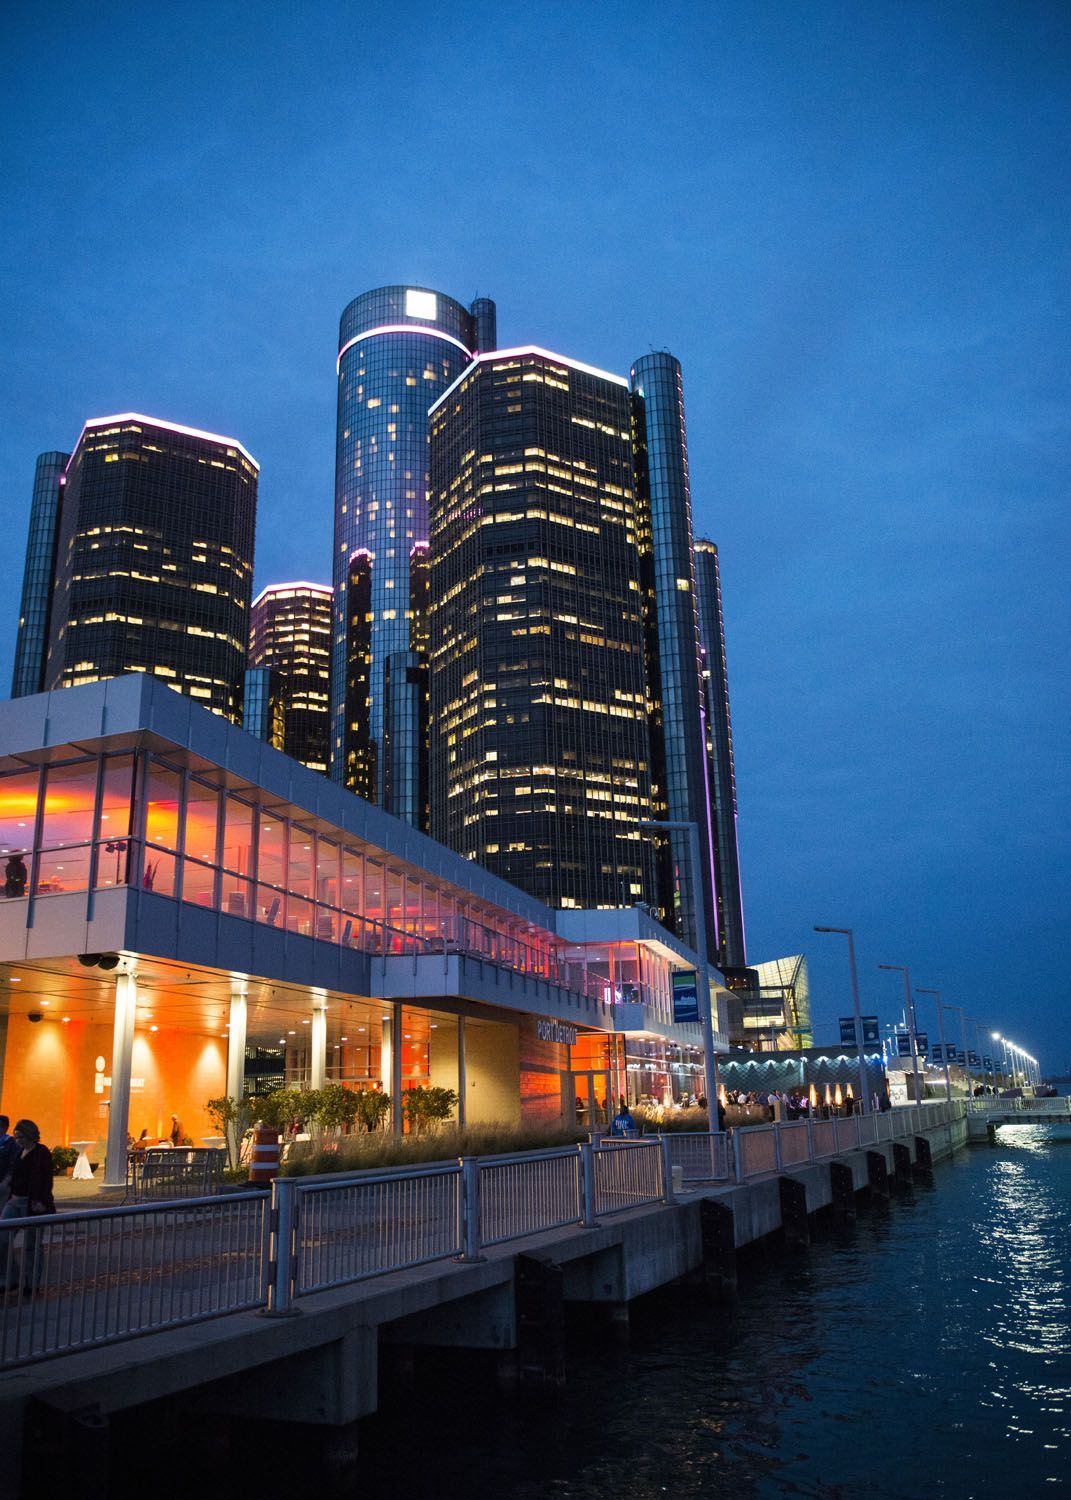 Waterview Loft has a great view of The Renaissance Center